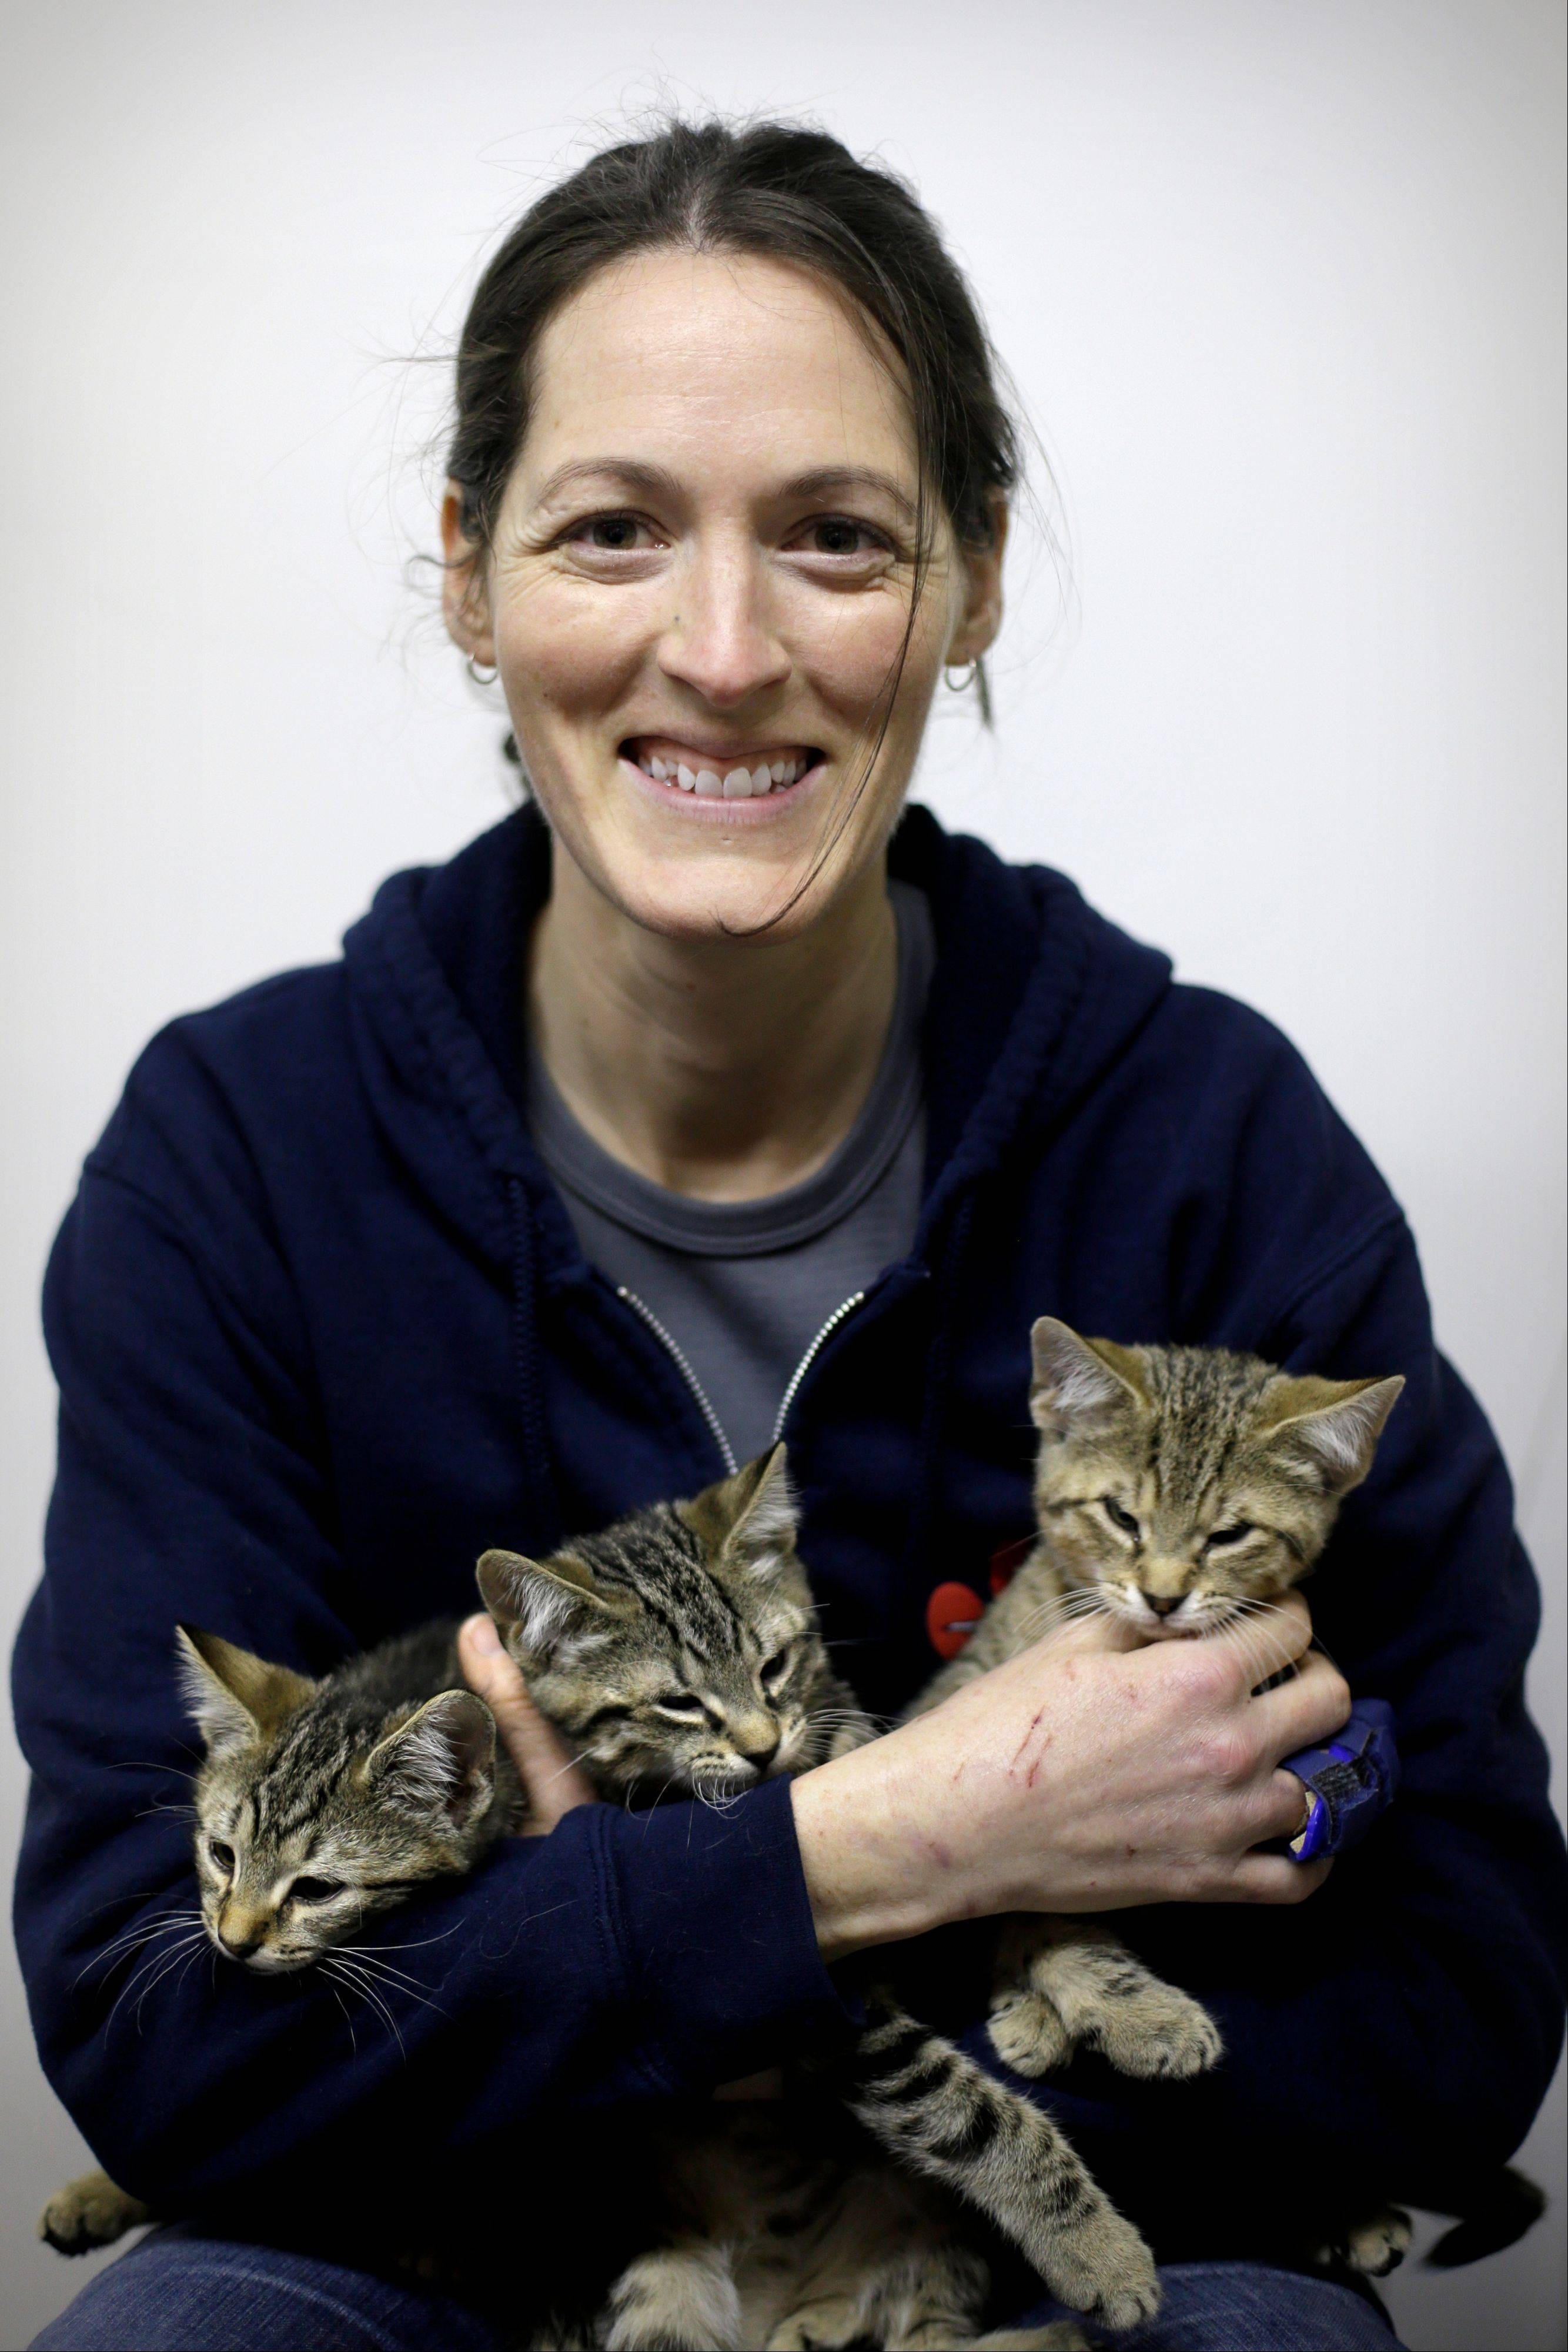 Red Paw founder Jen Leary cuddles kittens March 28 at their adoption facility in Philadelphia. The emergency relief service Red Paw has paired with the local Red Cross to care for animals displaced by flames, floods or other residential disasters, with the goal of eventually reuniting them with their owners.